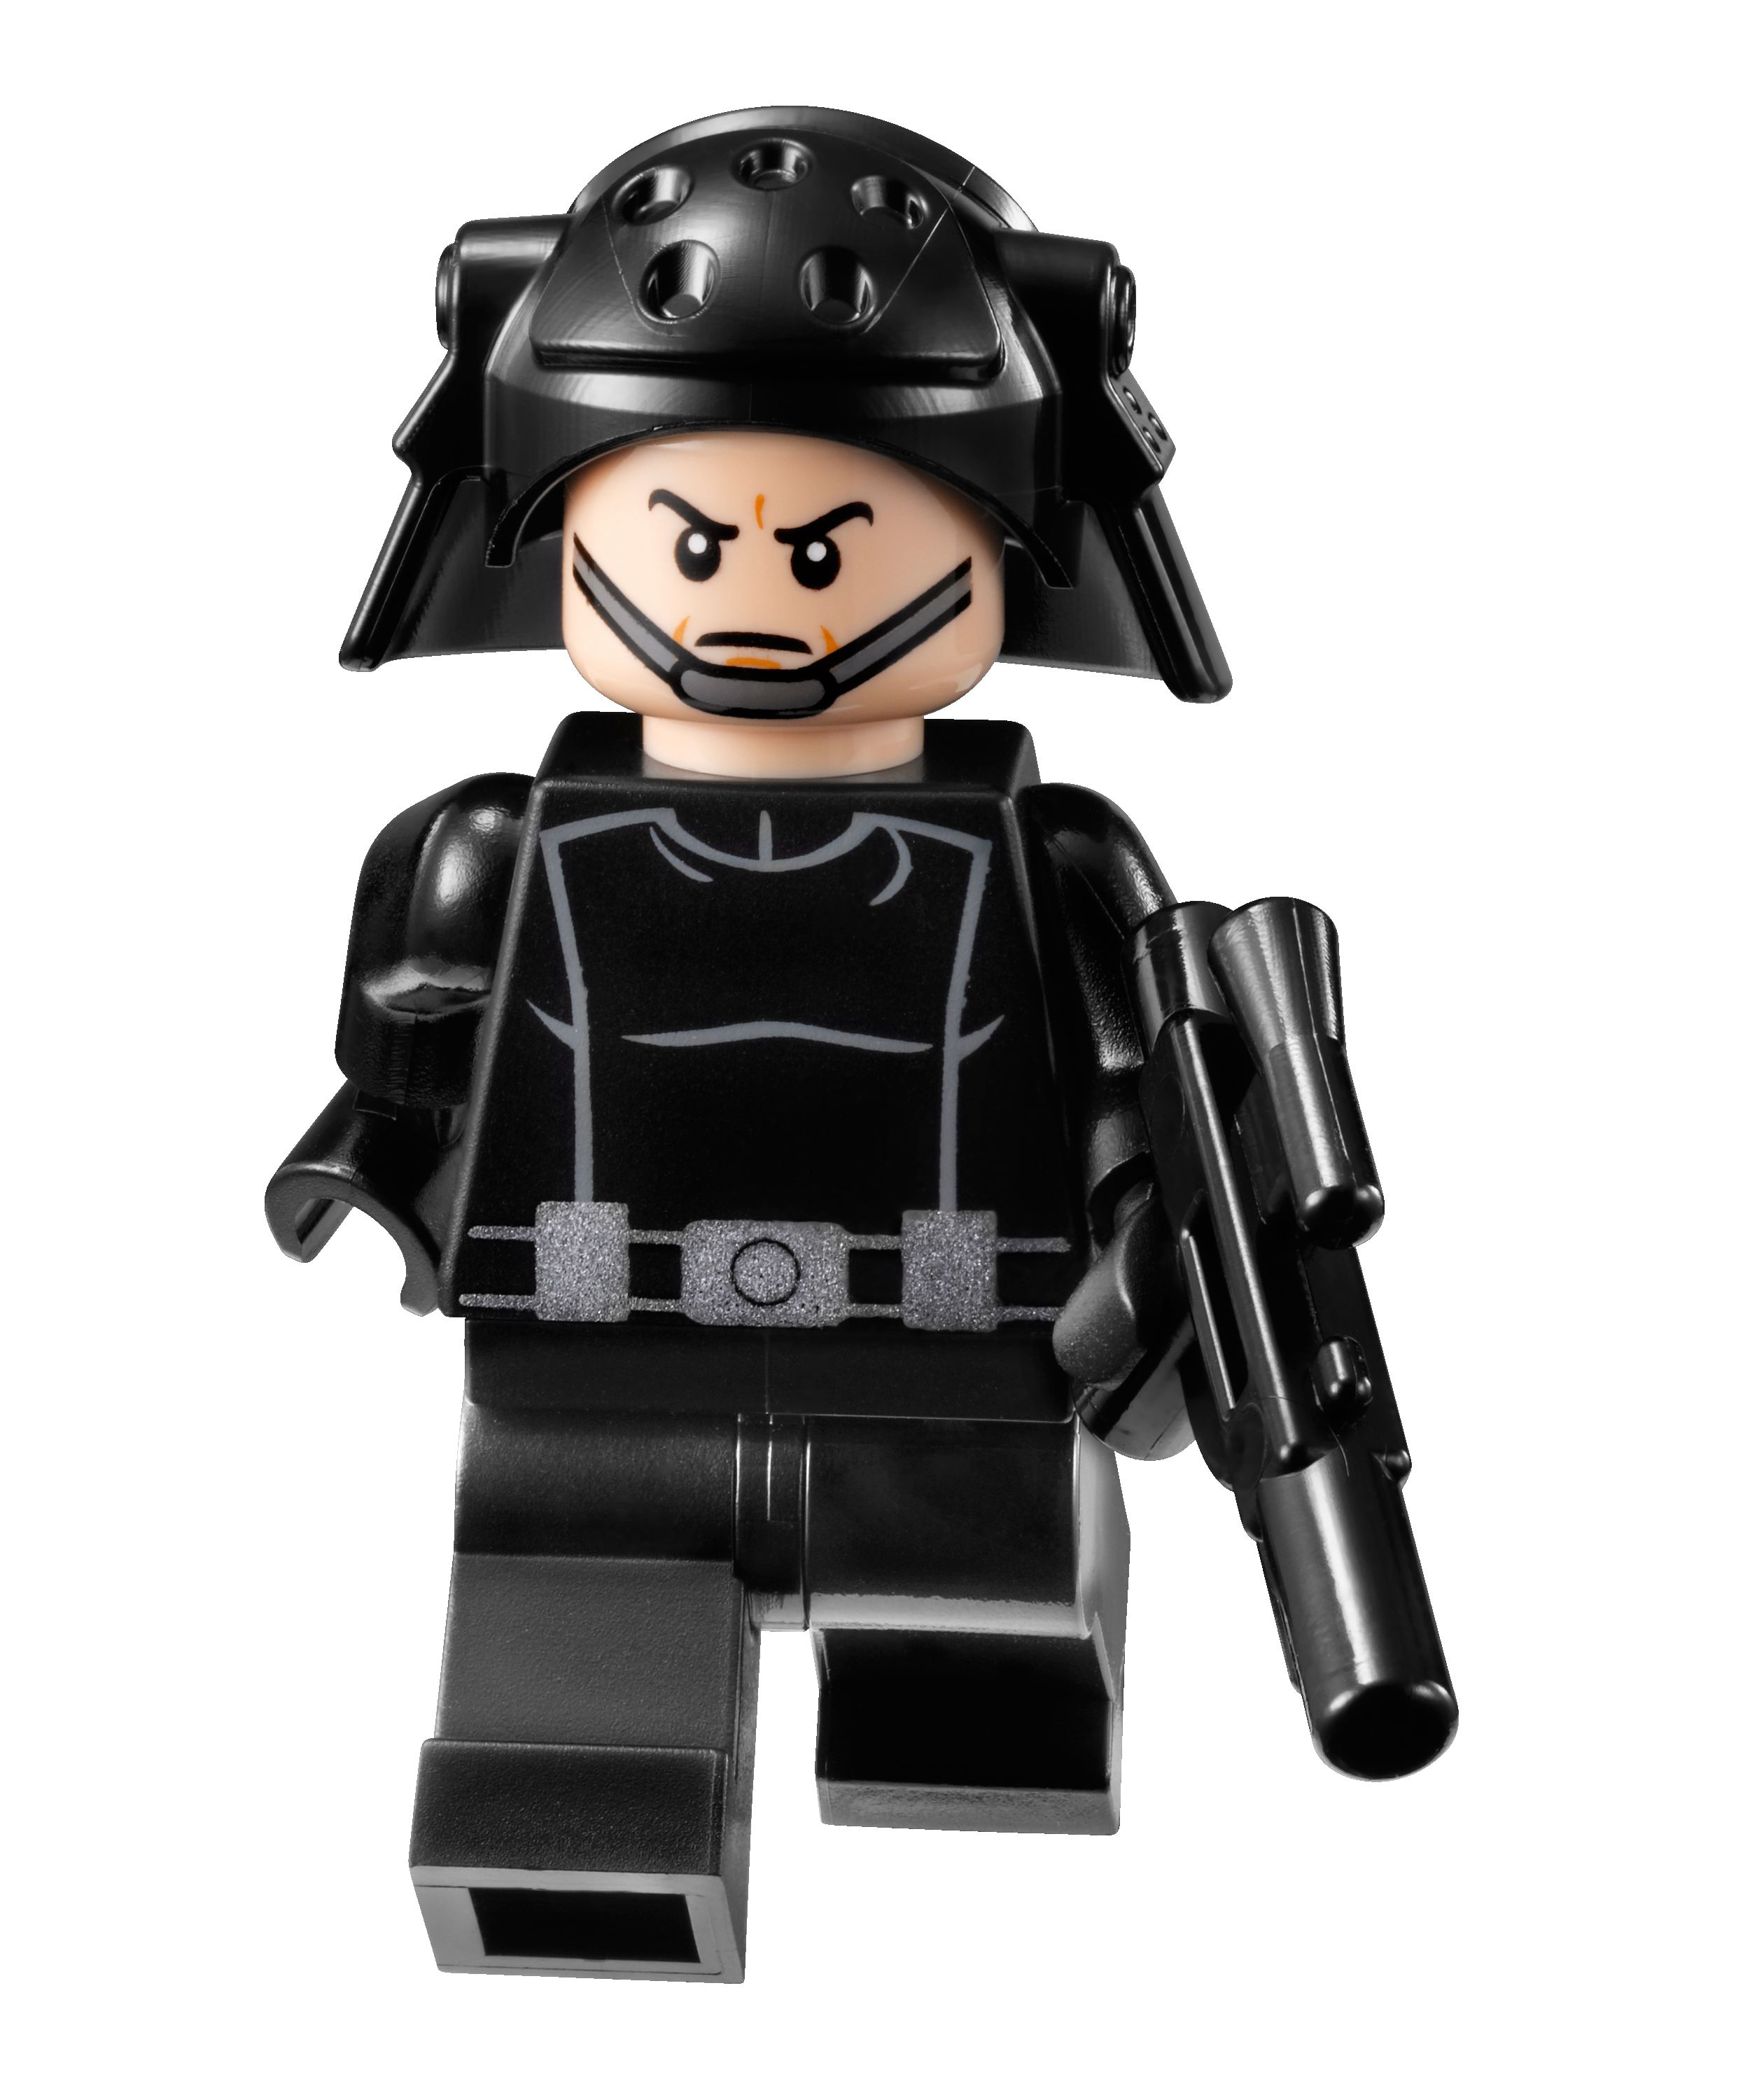 m_9492_death_star_trooper.jpg